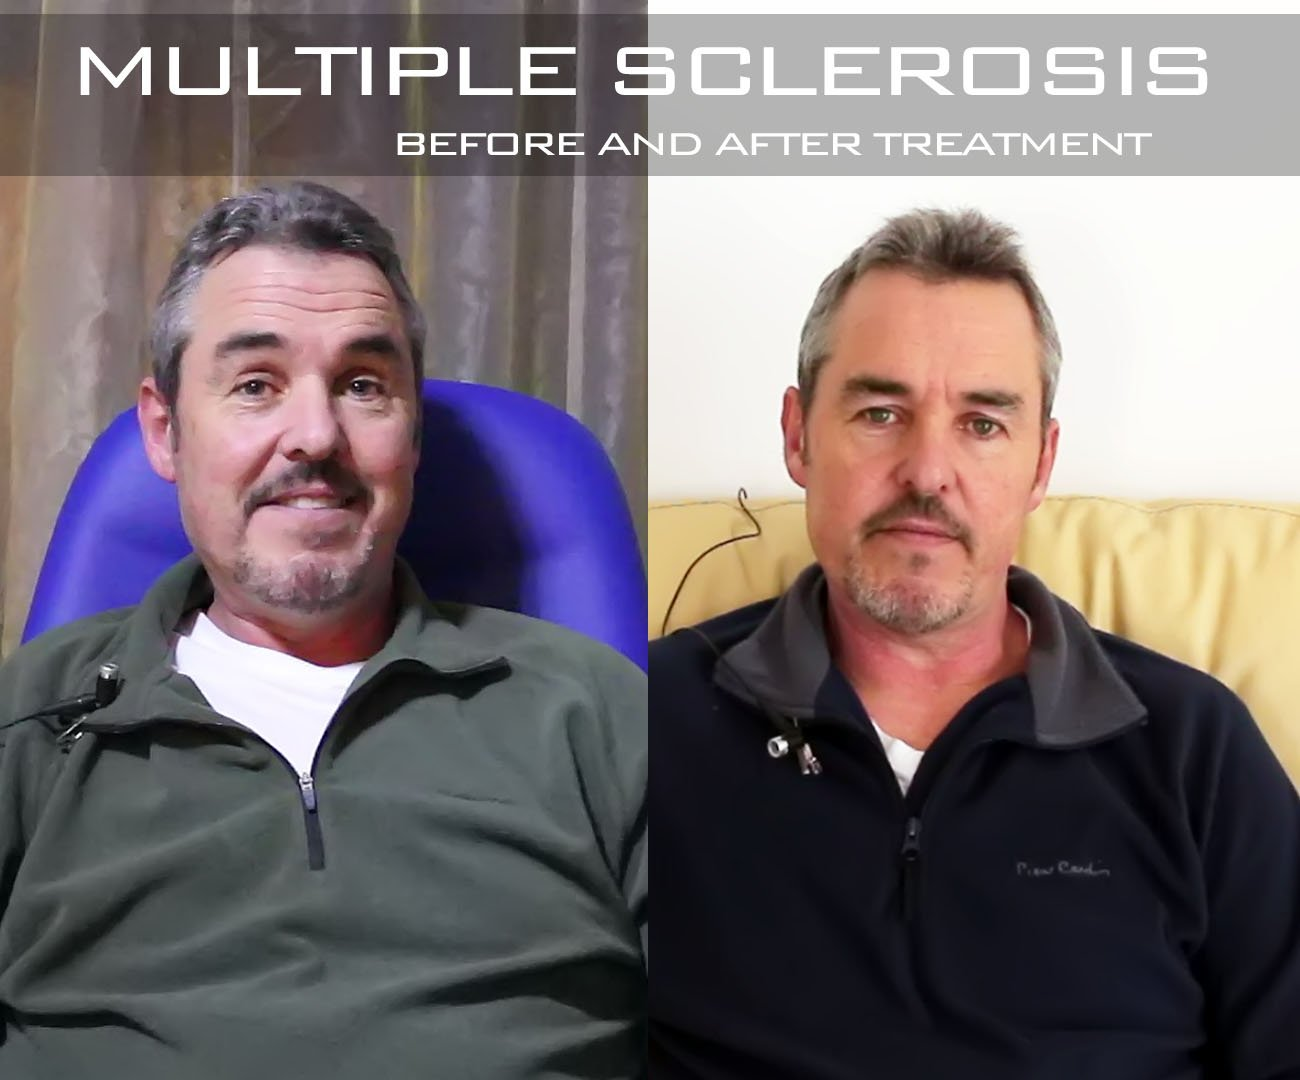 multiple sclerosis treatment before and after